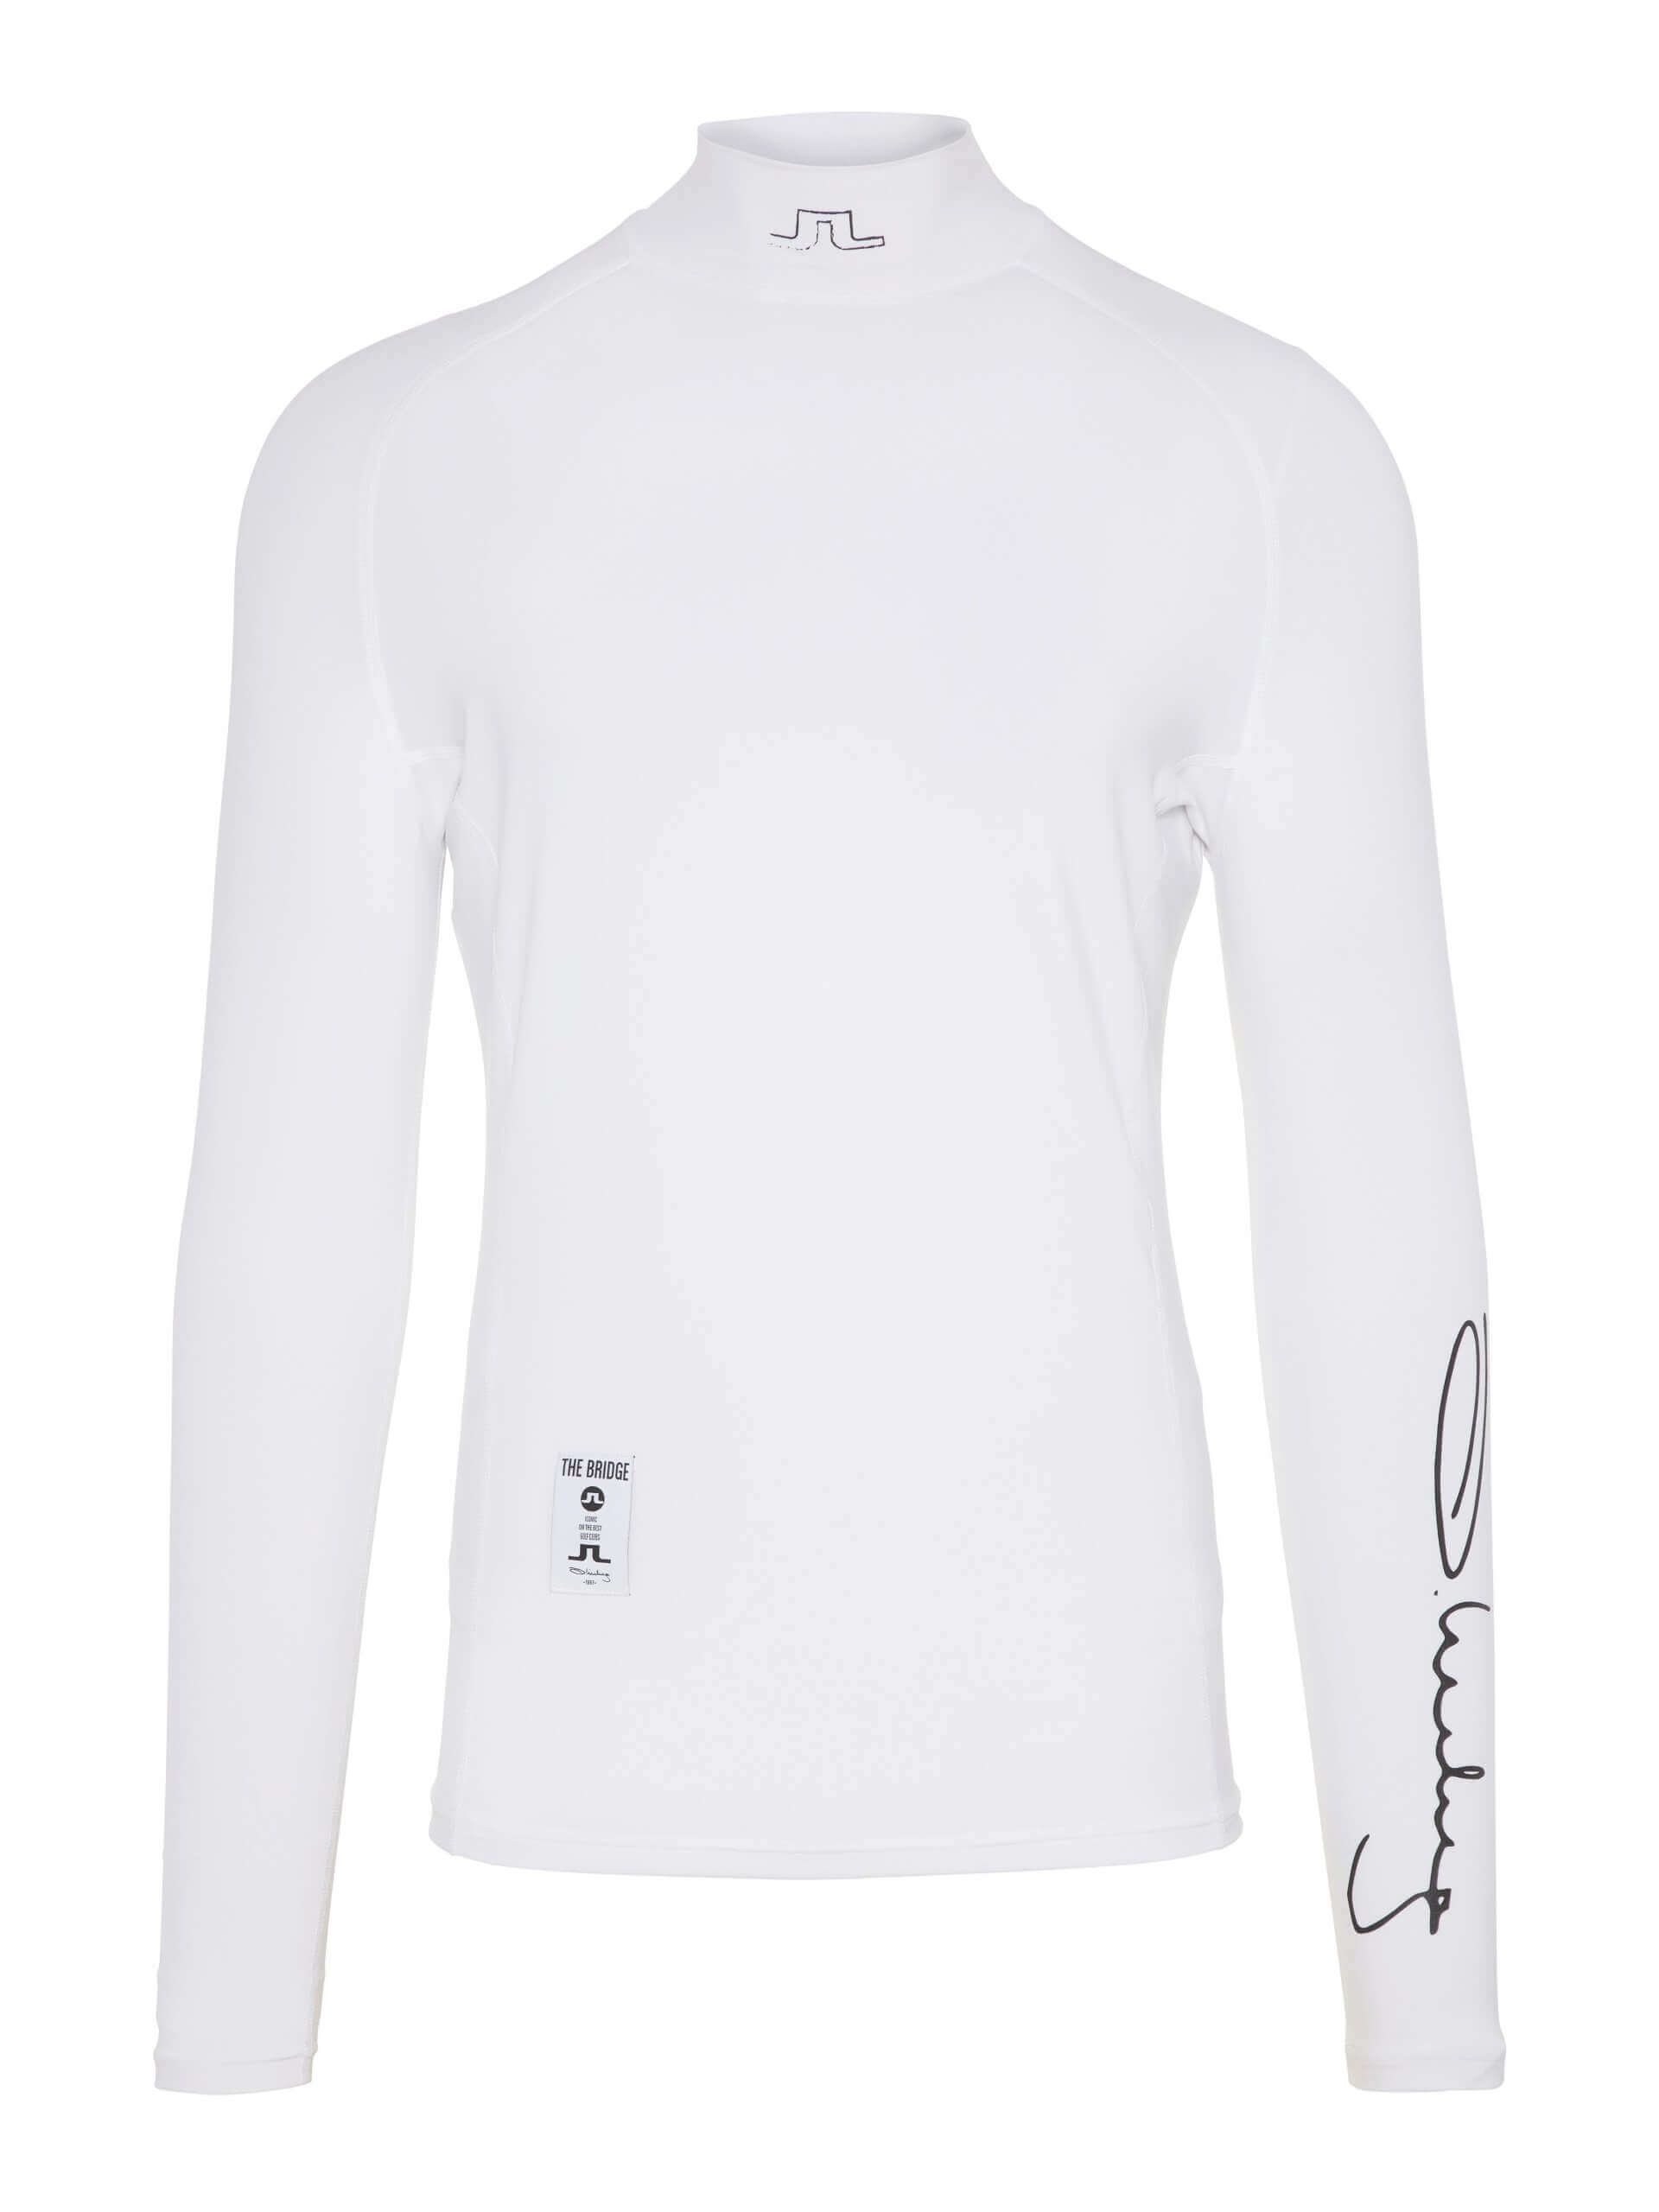 J.Lindeberg - El Soft Compression top in white